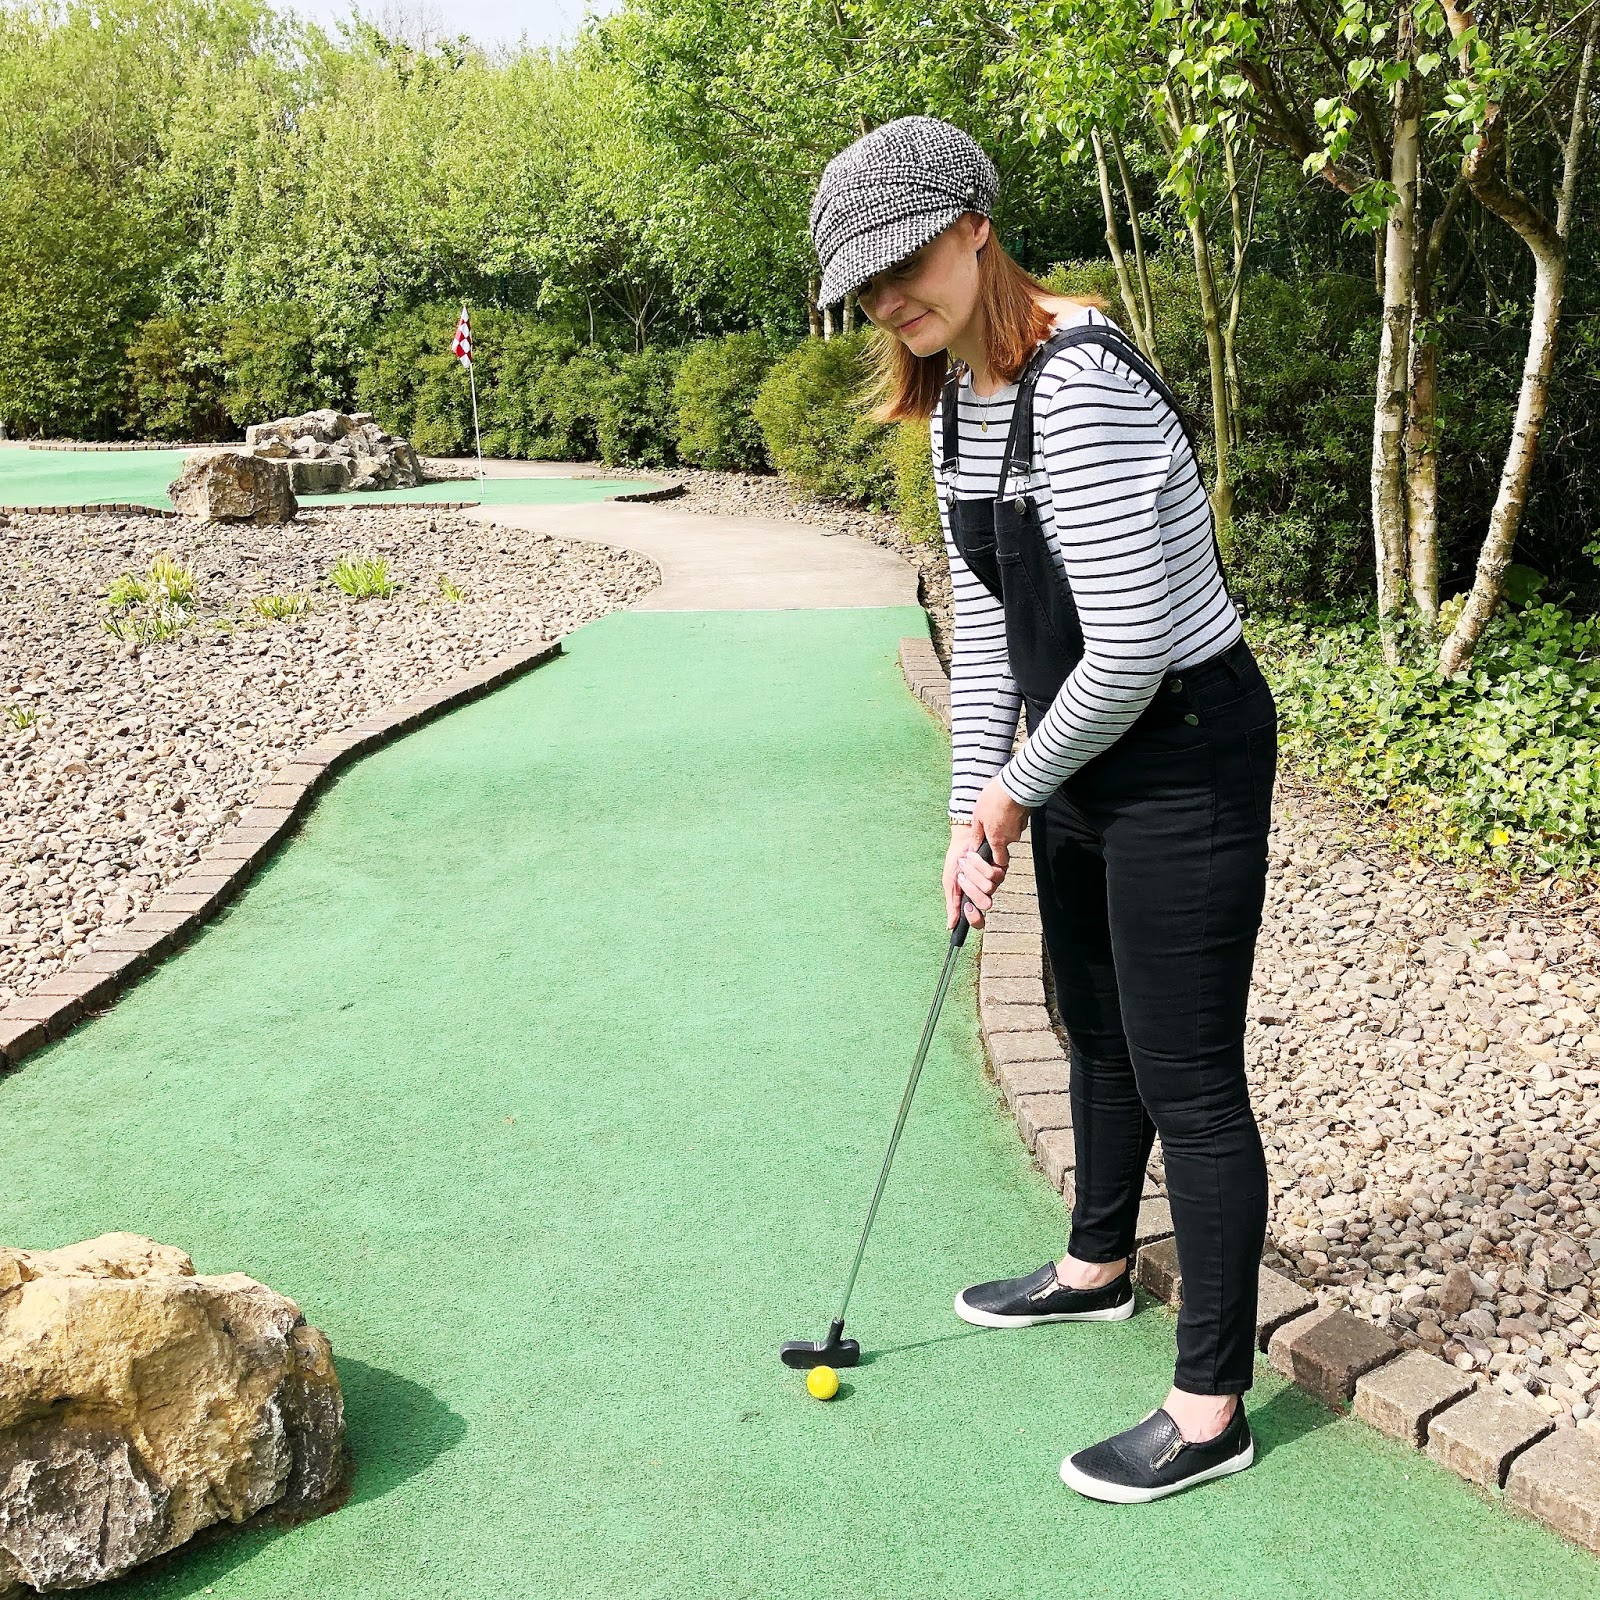 My May Days - Parklands Mini Golf